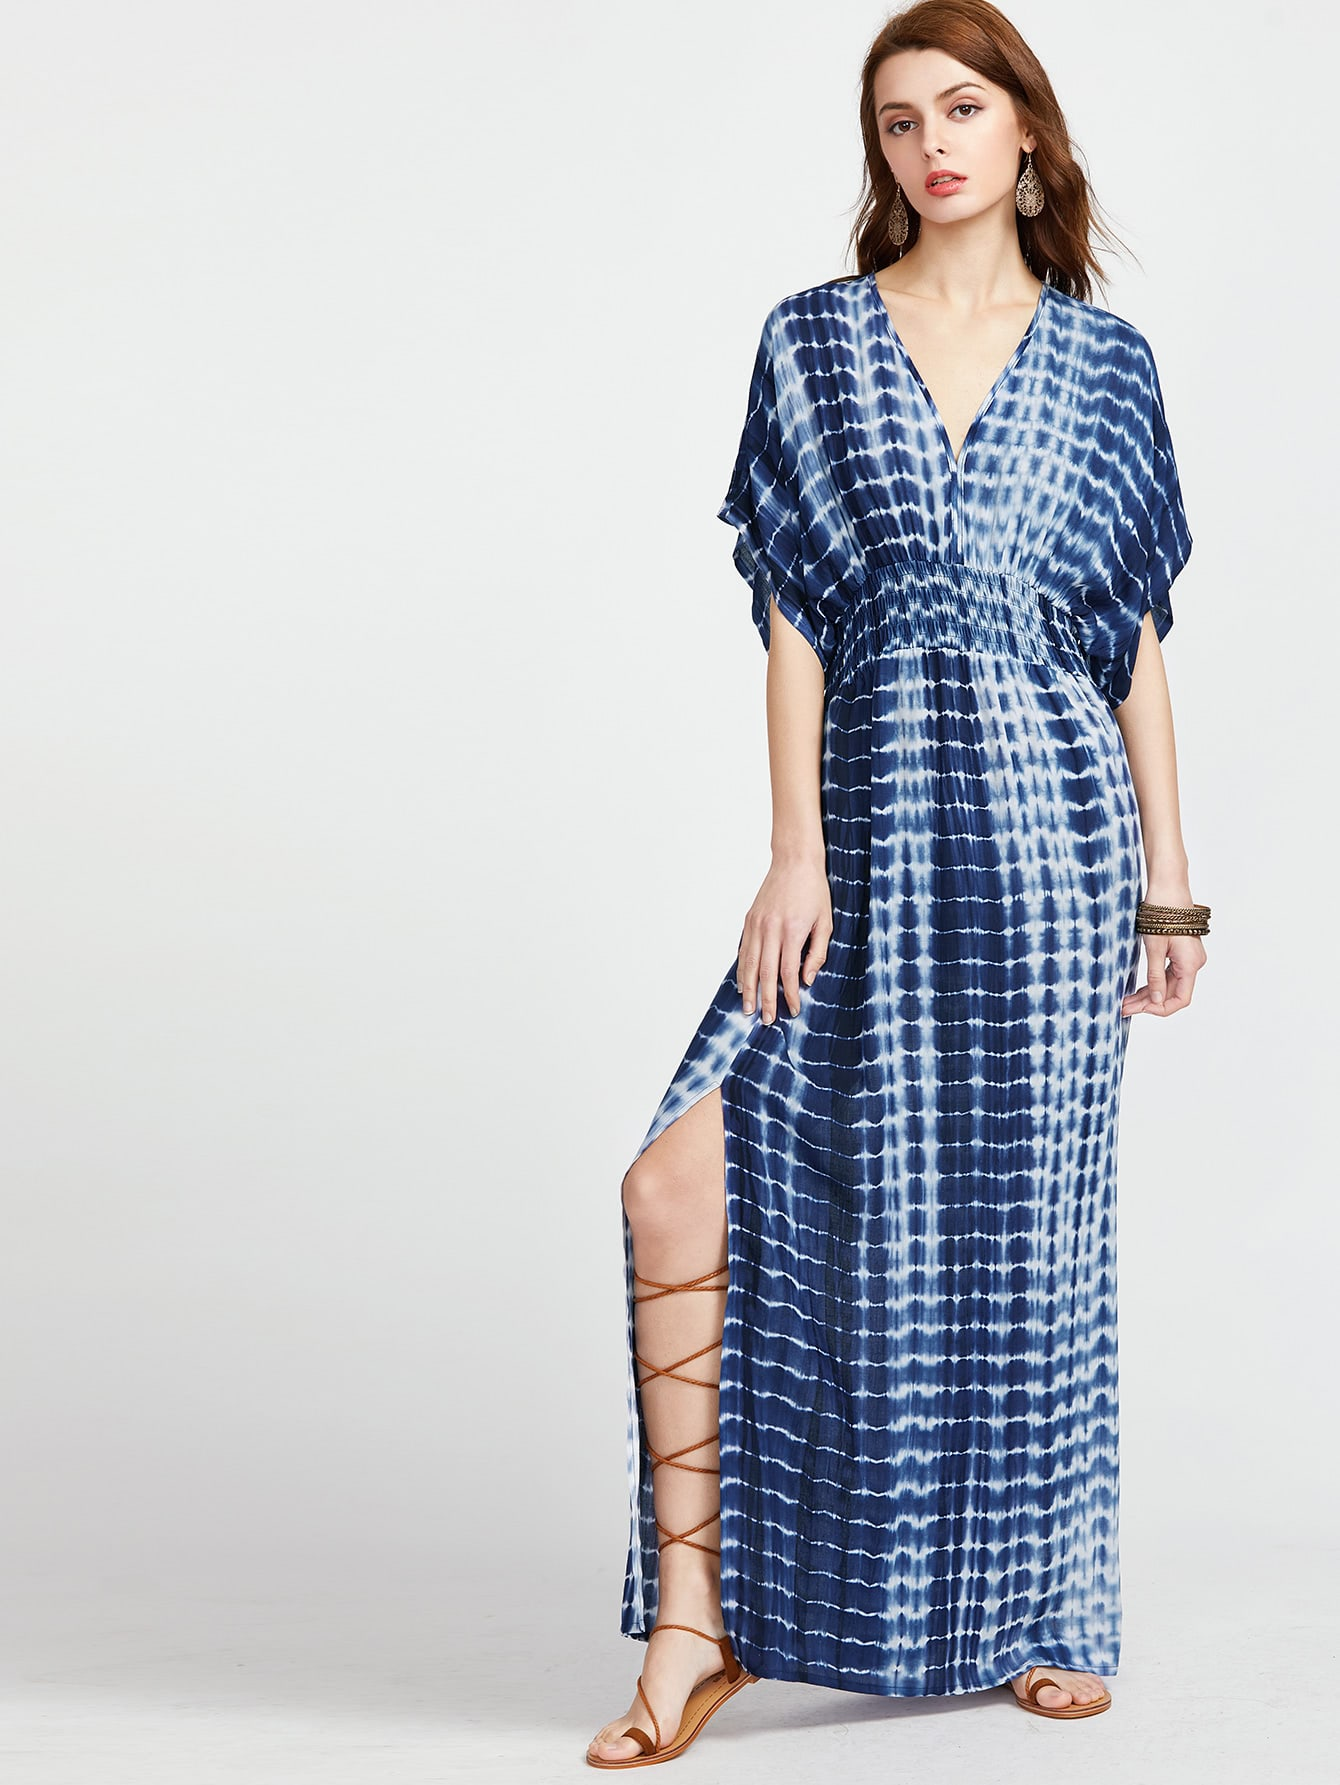 Shop for v neck kimono sleeve dress online at Target. Free shipping on purchases over $35 and save 5% every day with your Target REDcard.